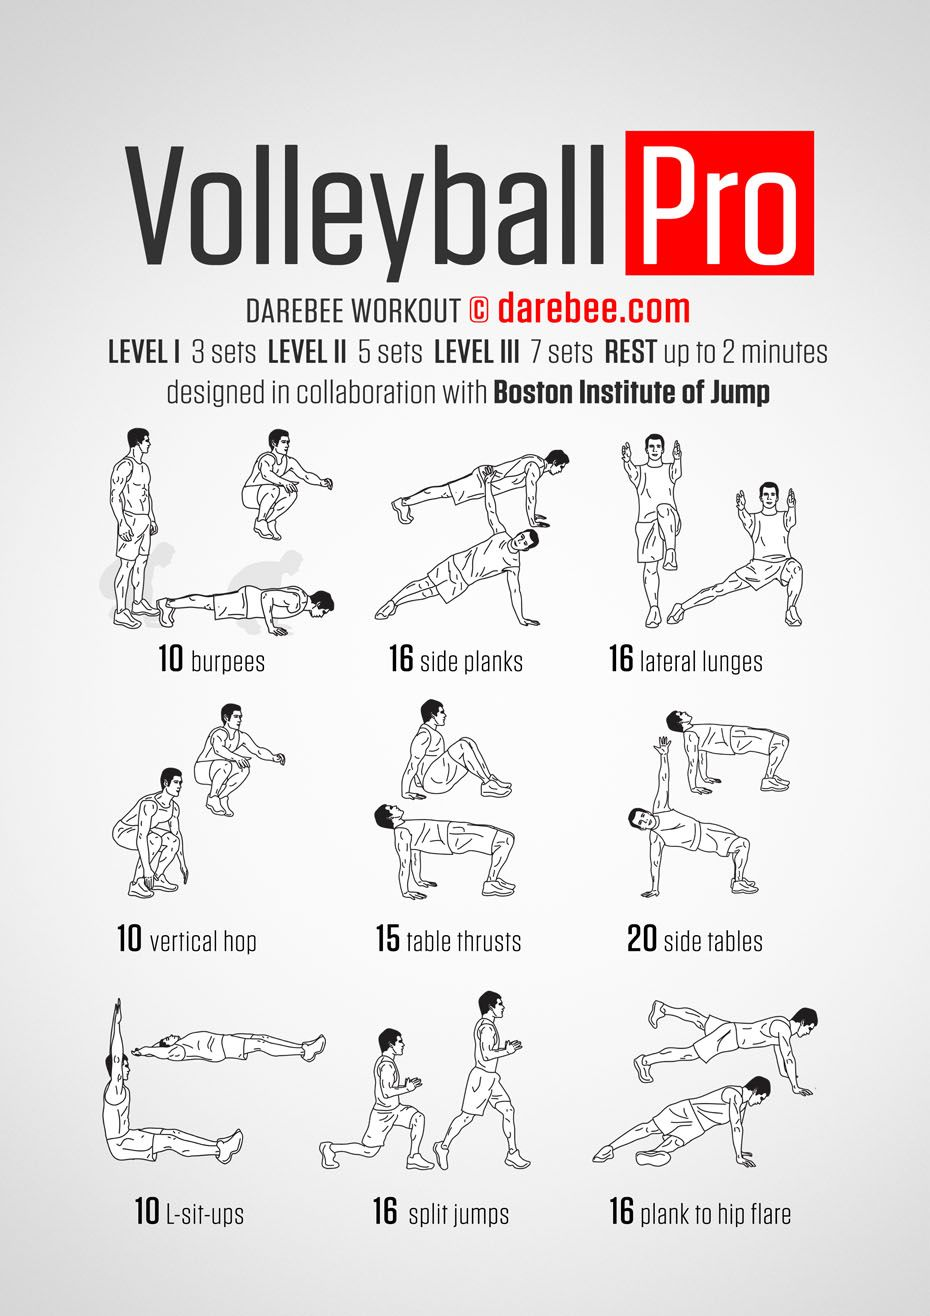 Volleyball Pro Workout Volleyball Workouts Volleyball Conditioning Volleyball Training